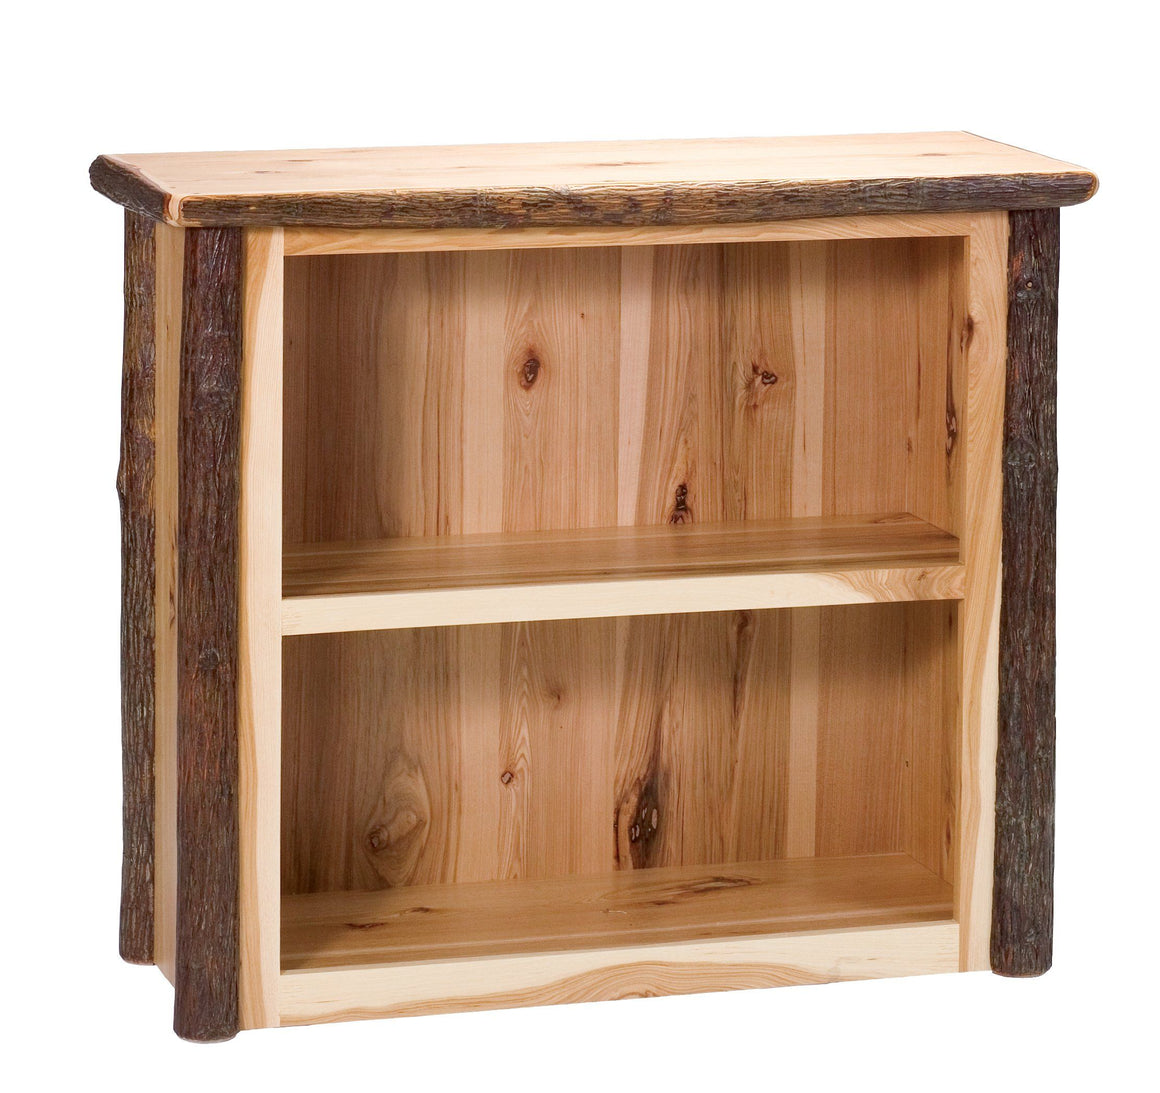 Natural Hickory Log Small Bookshelf - Standard Finish - Rustic Deco Incorporated